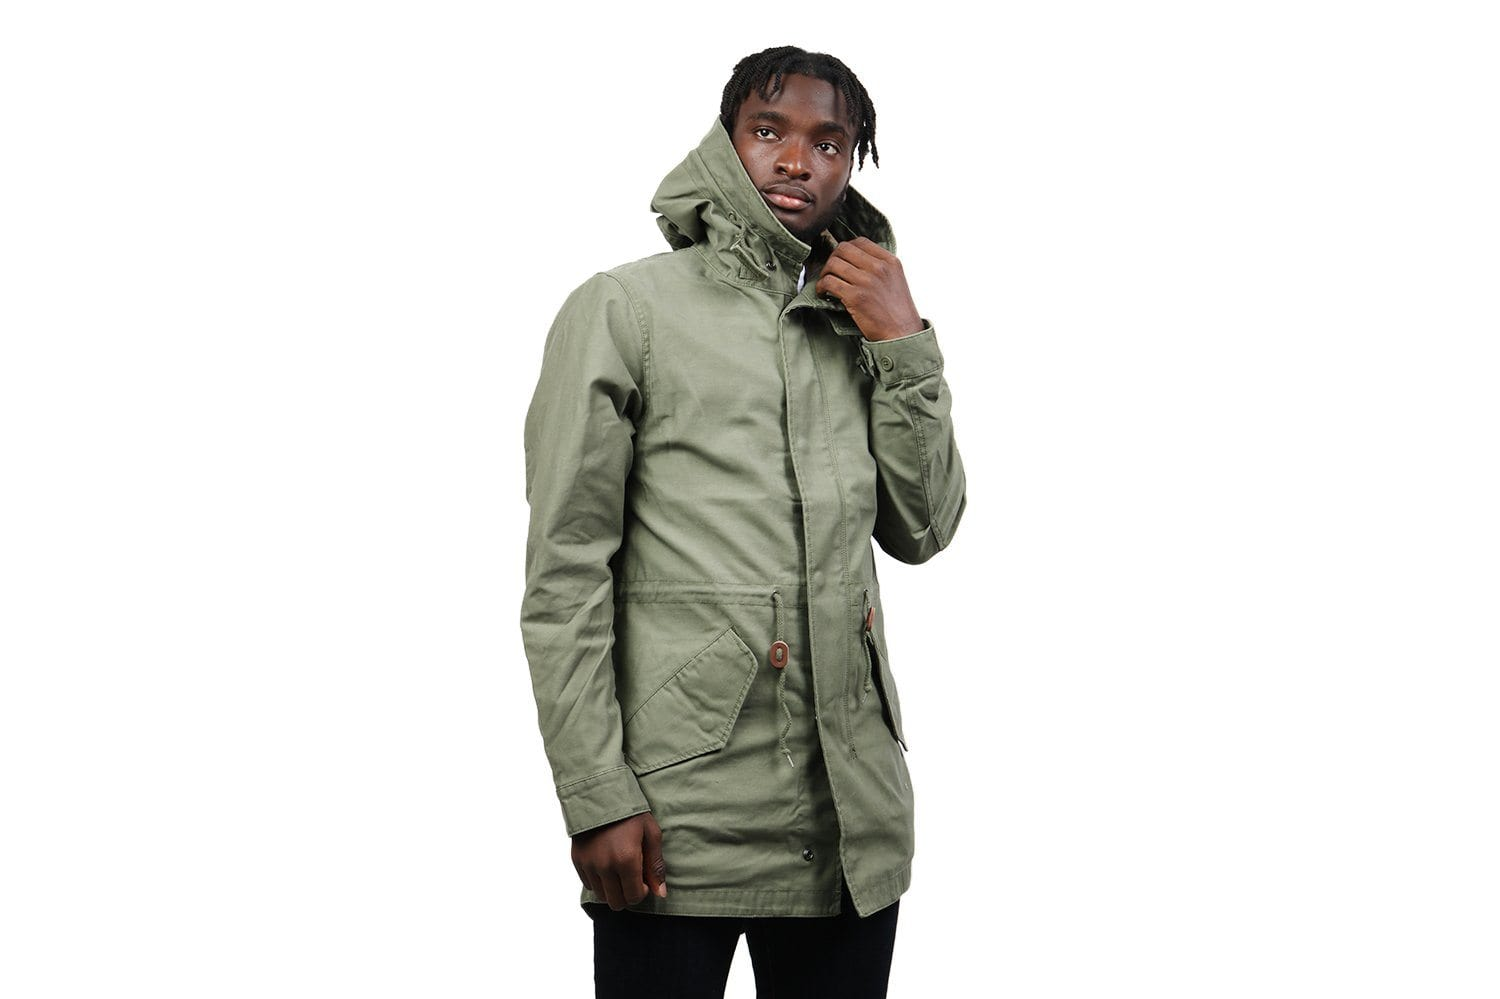 M-59 FISHTAIL JACKET MENS SOFTGOODS ALPHA INDUSTRIES OLIVE M